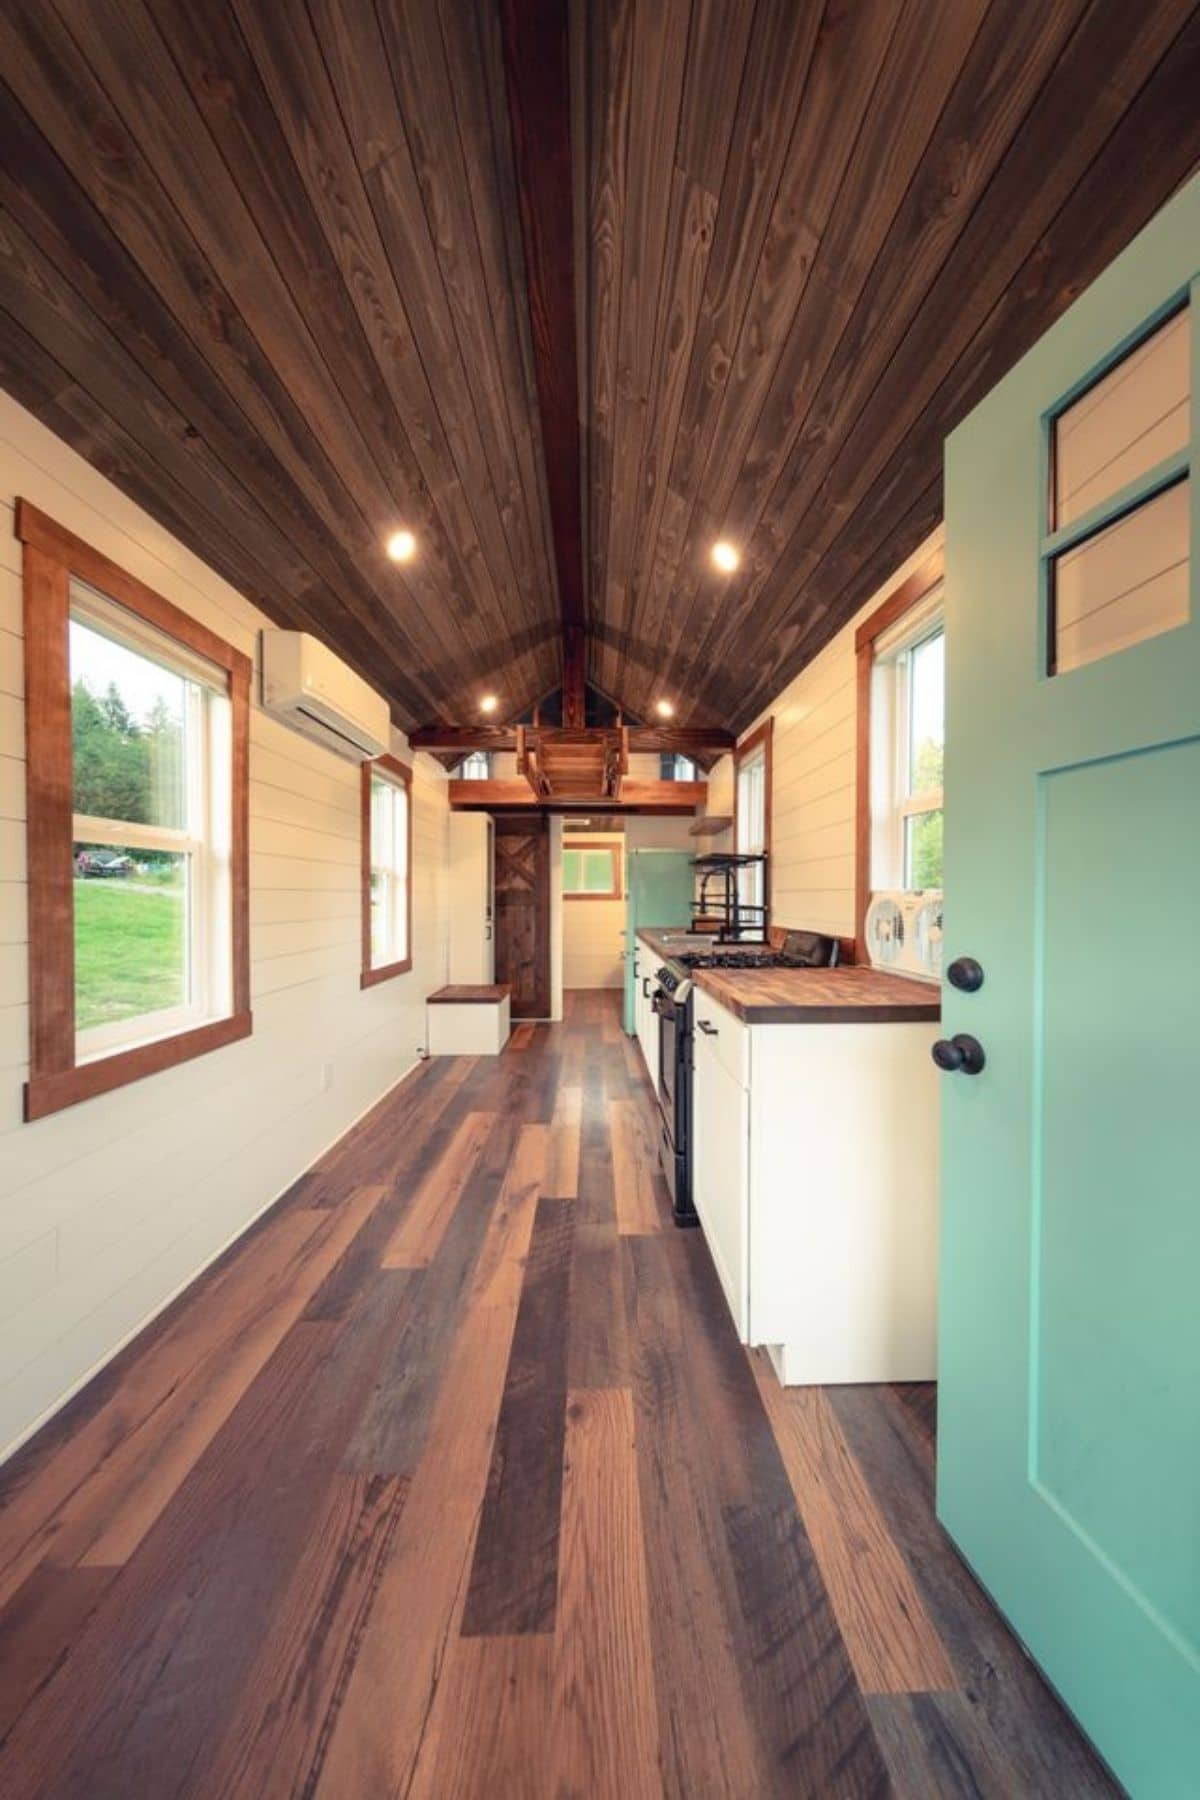 View just through light teal door on right showing white walls and dark wood floors